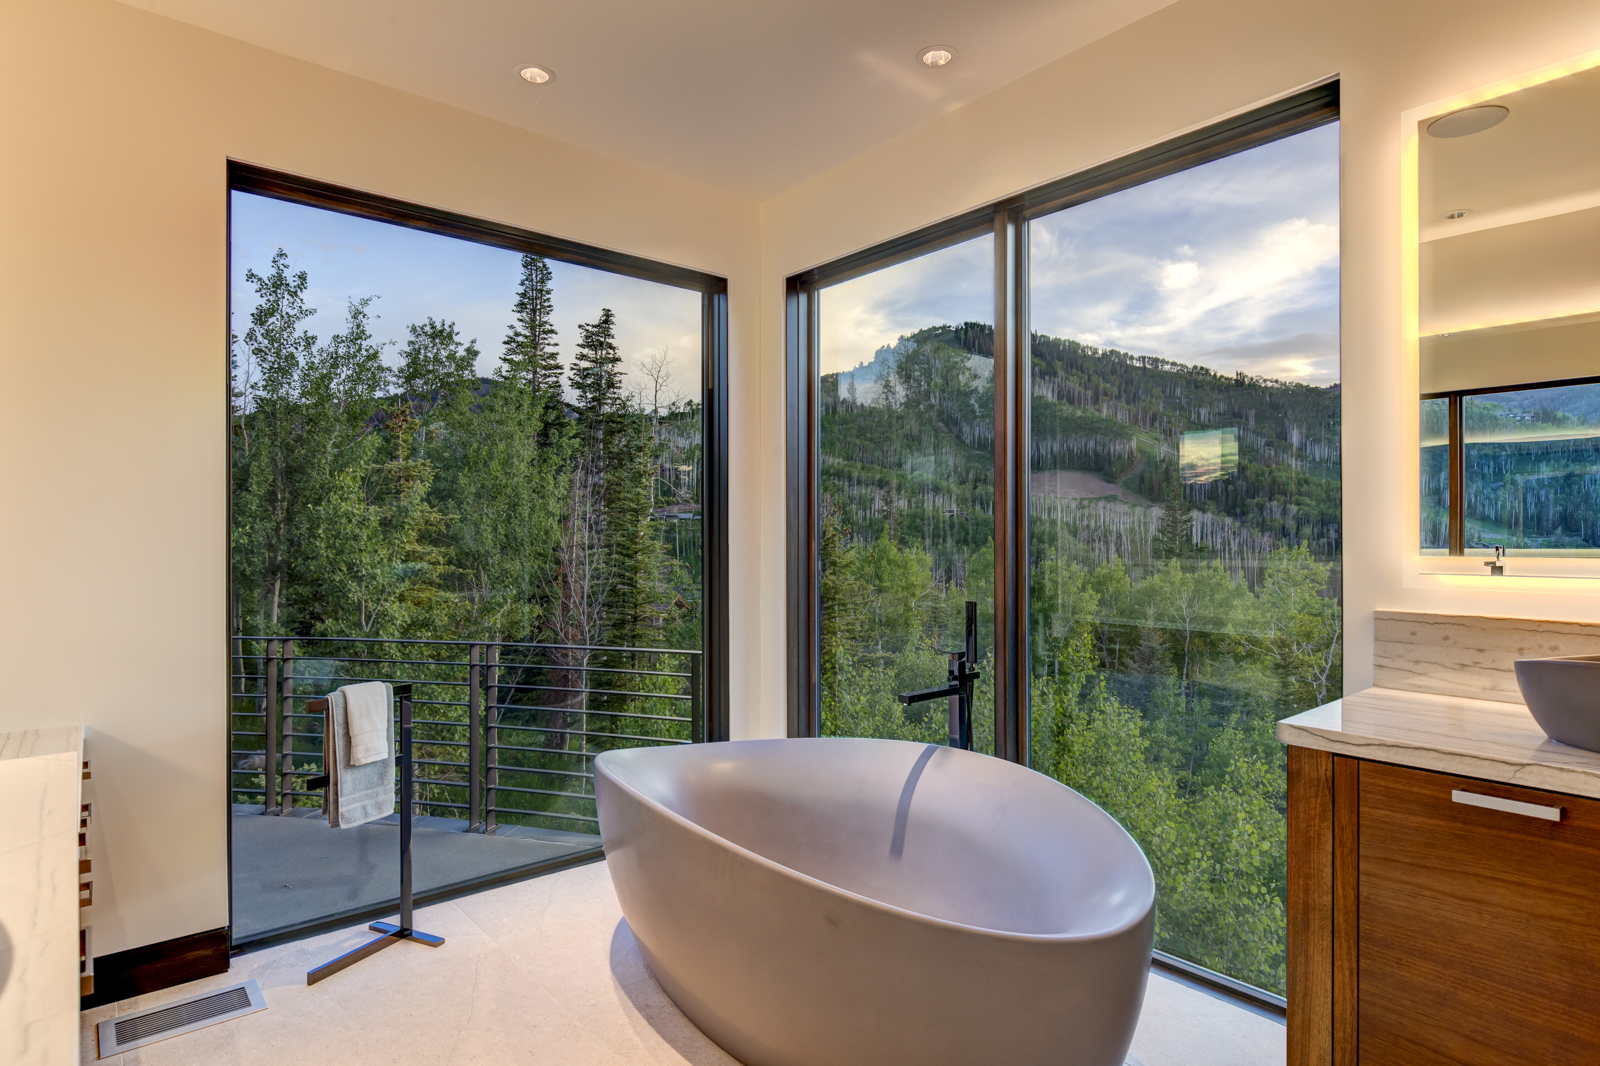 217-White-Pine-Canyon-Road-Ski-In-Ski-Out-Park-City-Real-Estate-Daimon-Bushi-Christies-Luxury-Portfolio-22